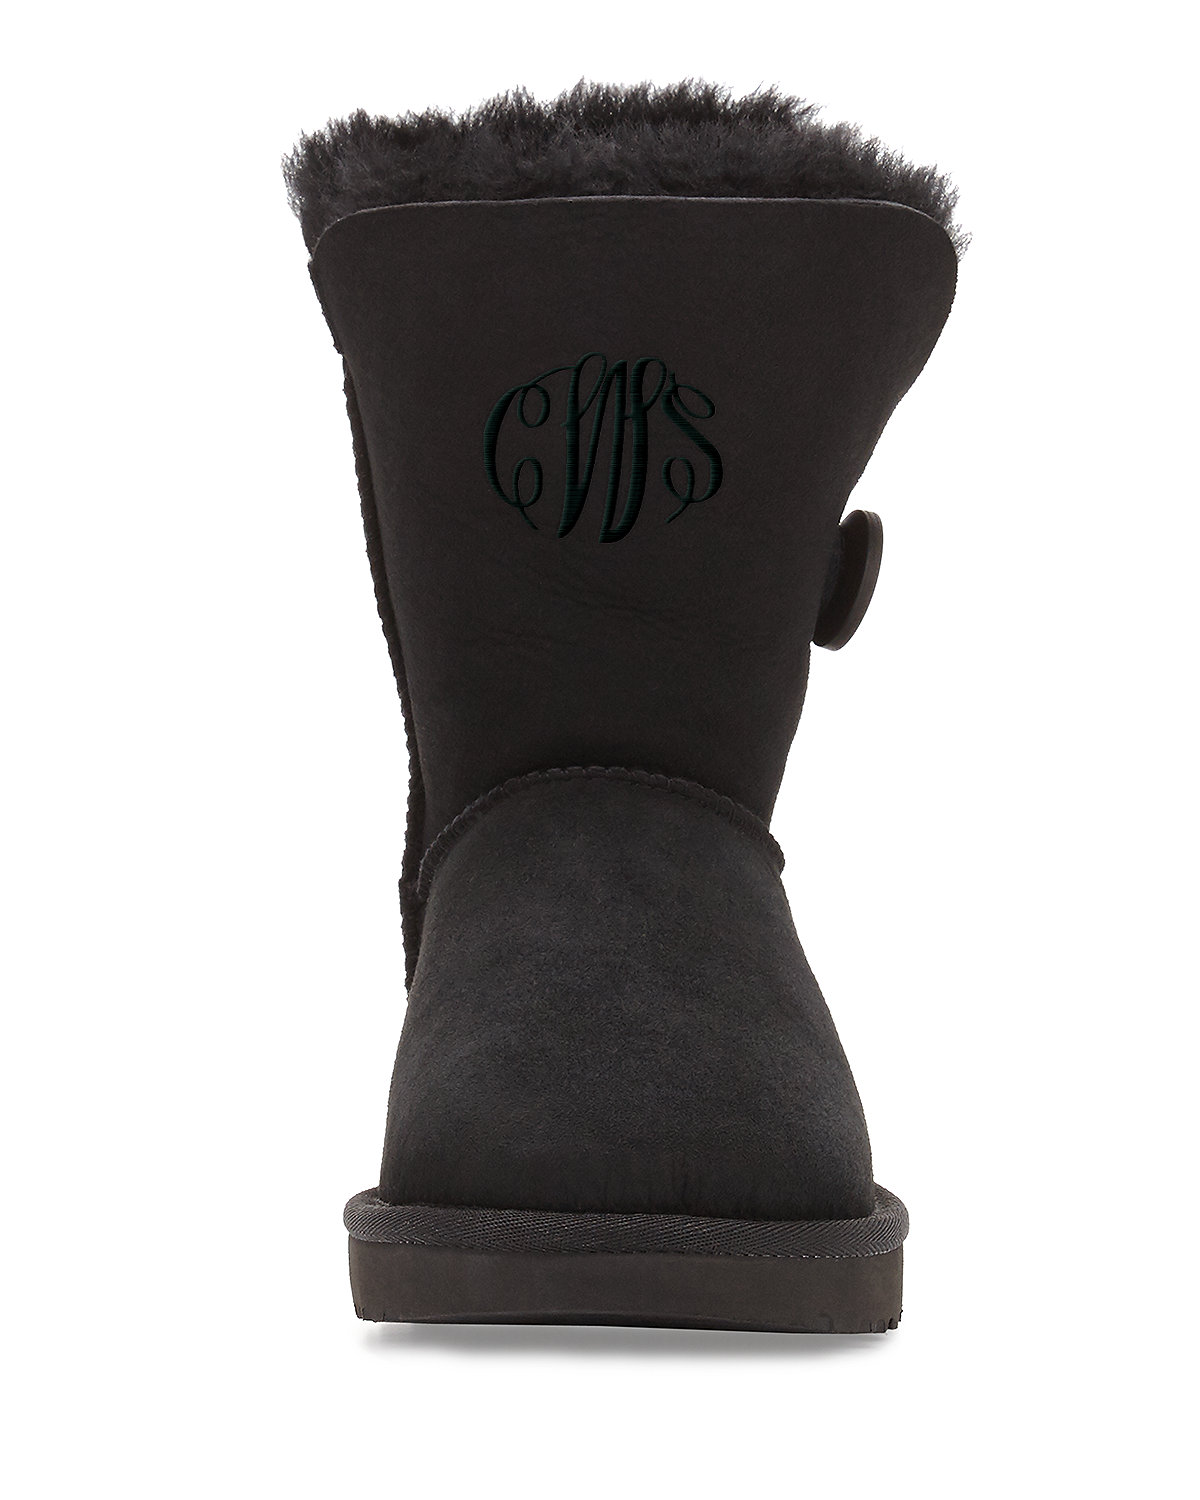 accbbc23ad3d UGG Bailey Button II Boots